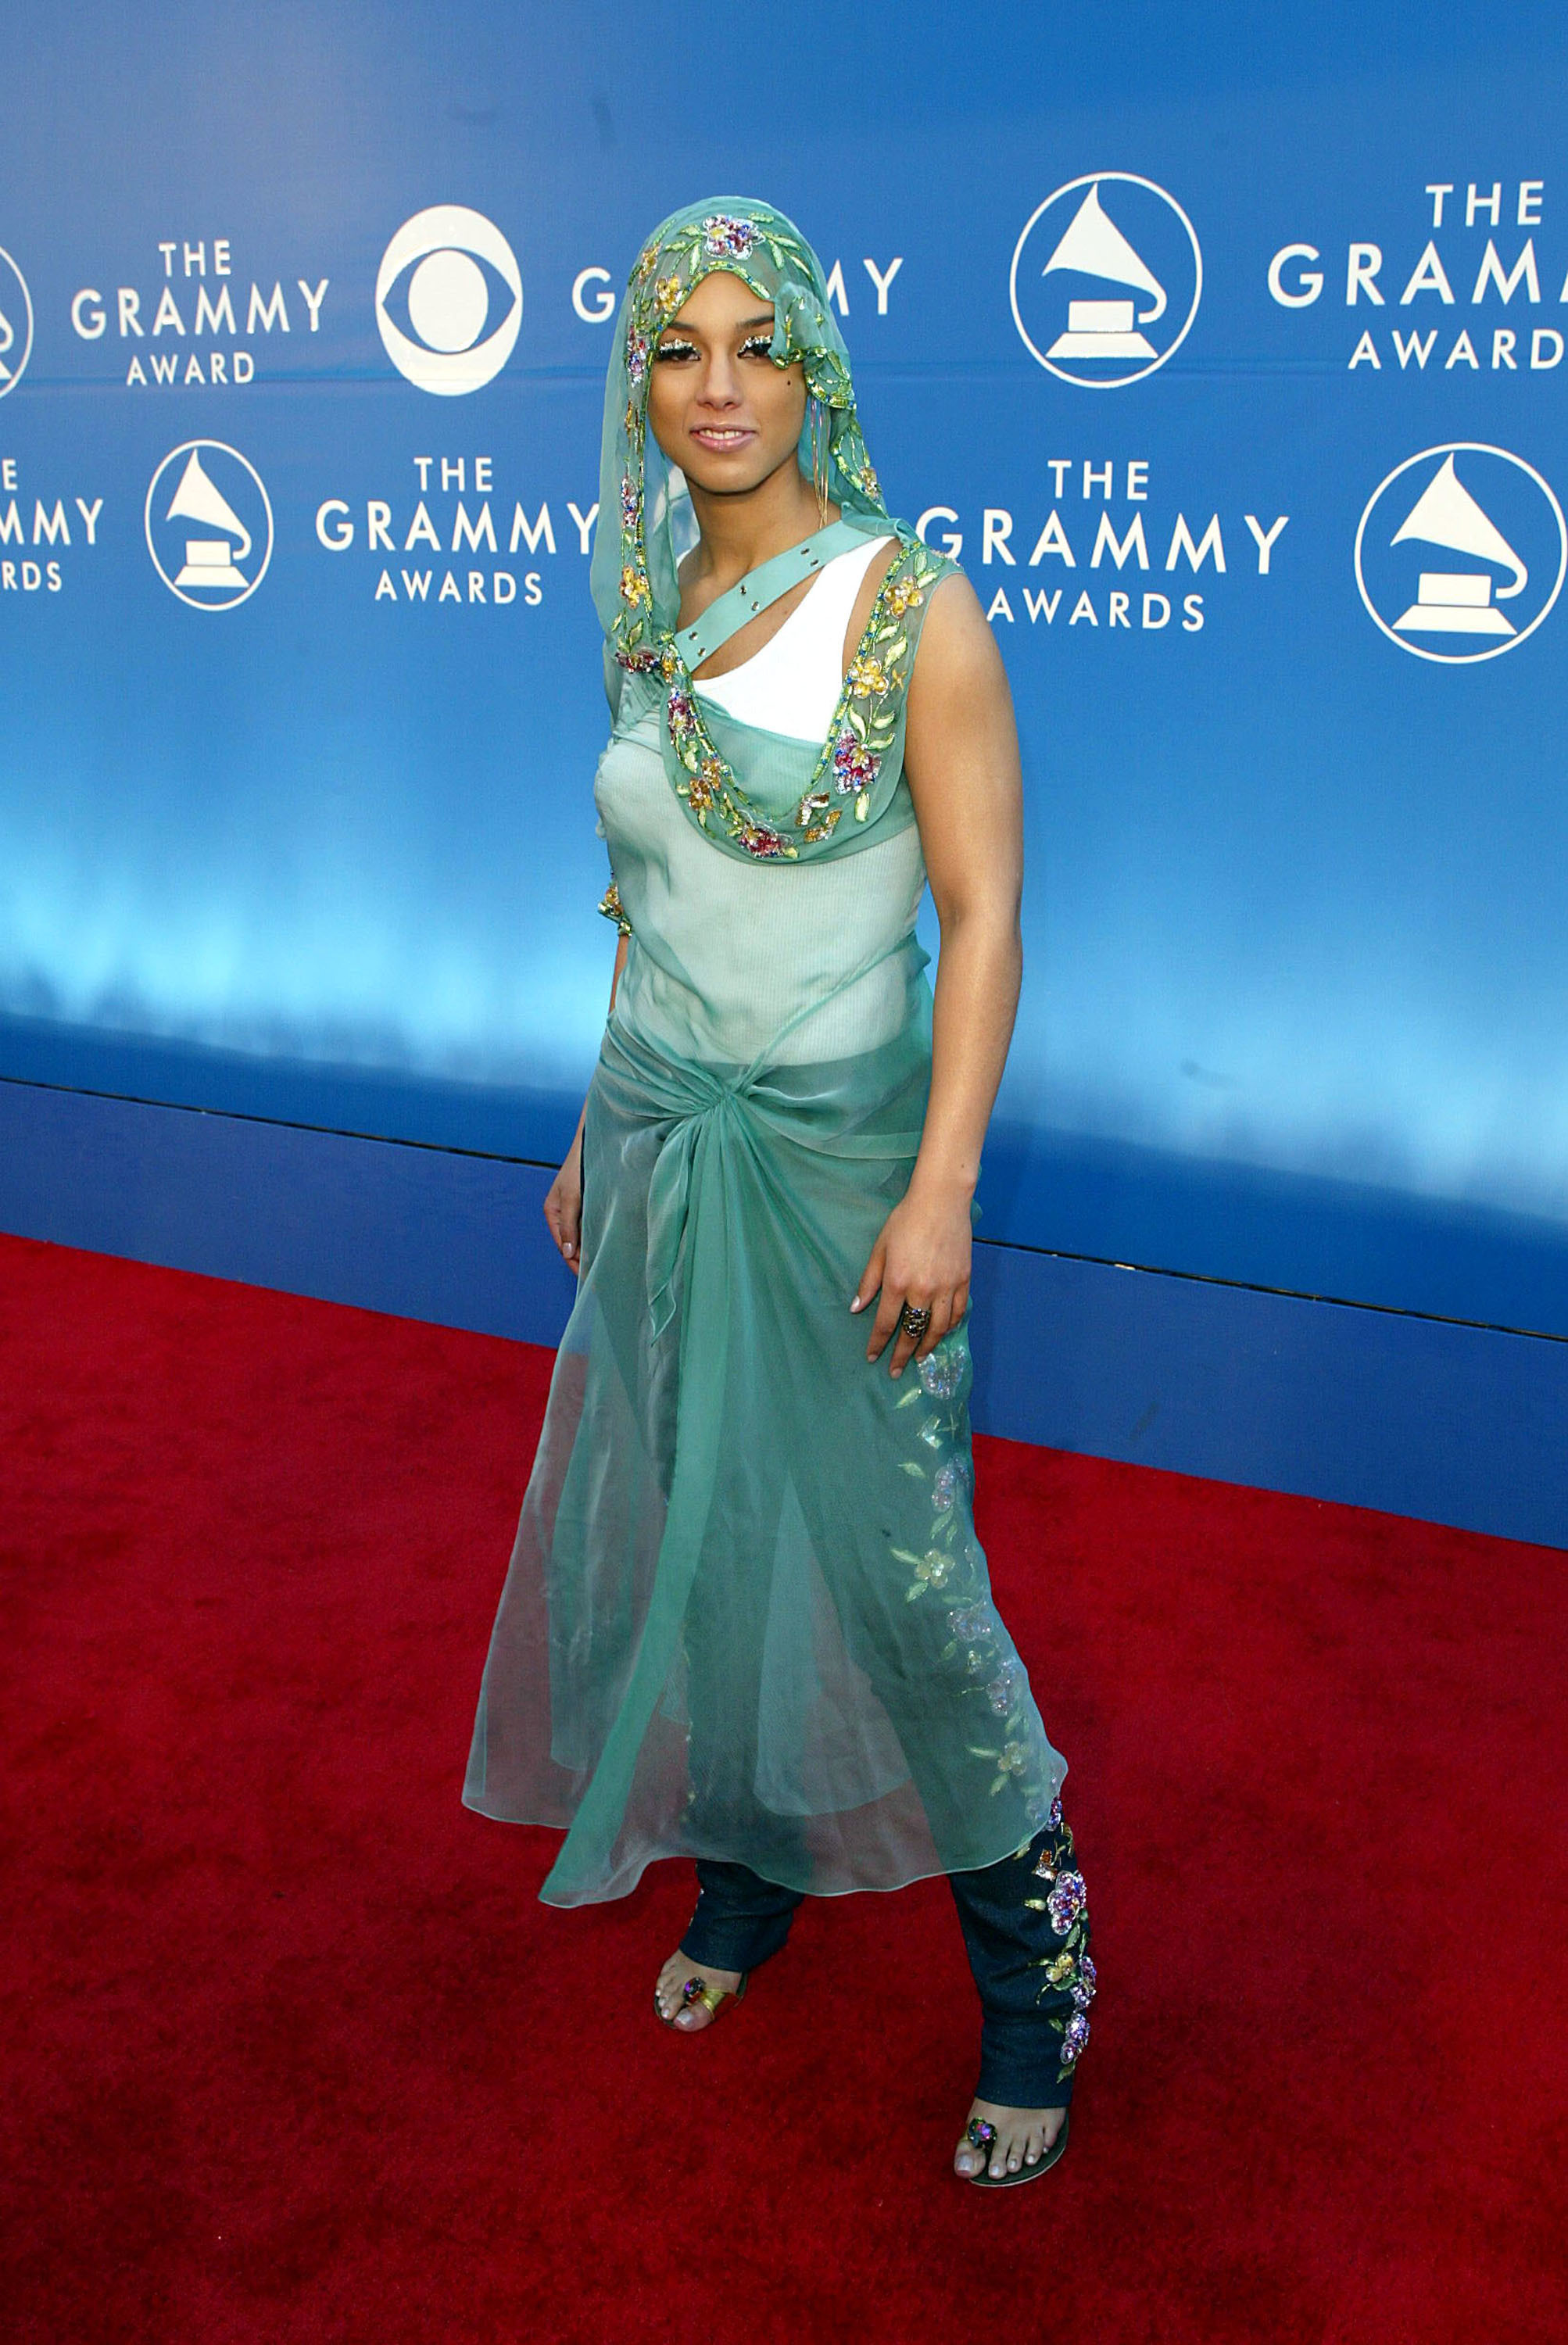 Alicia Keys arrives at the 44th Annual Grammy Awards at Staples Center in Los Angeles on Feb. 27, 2002.